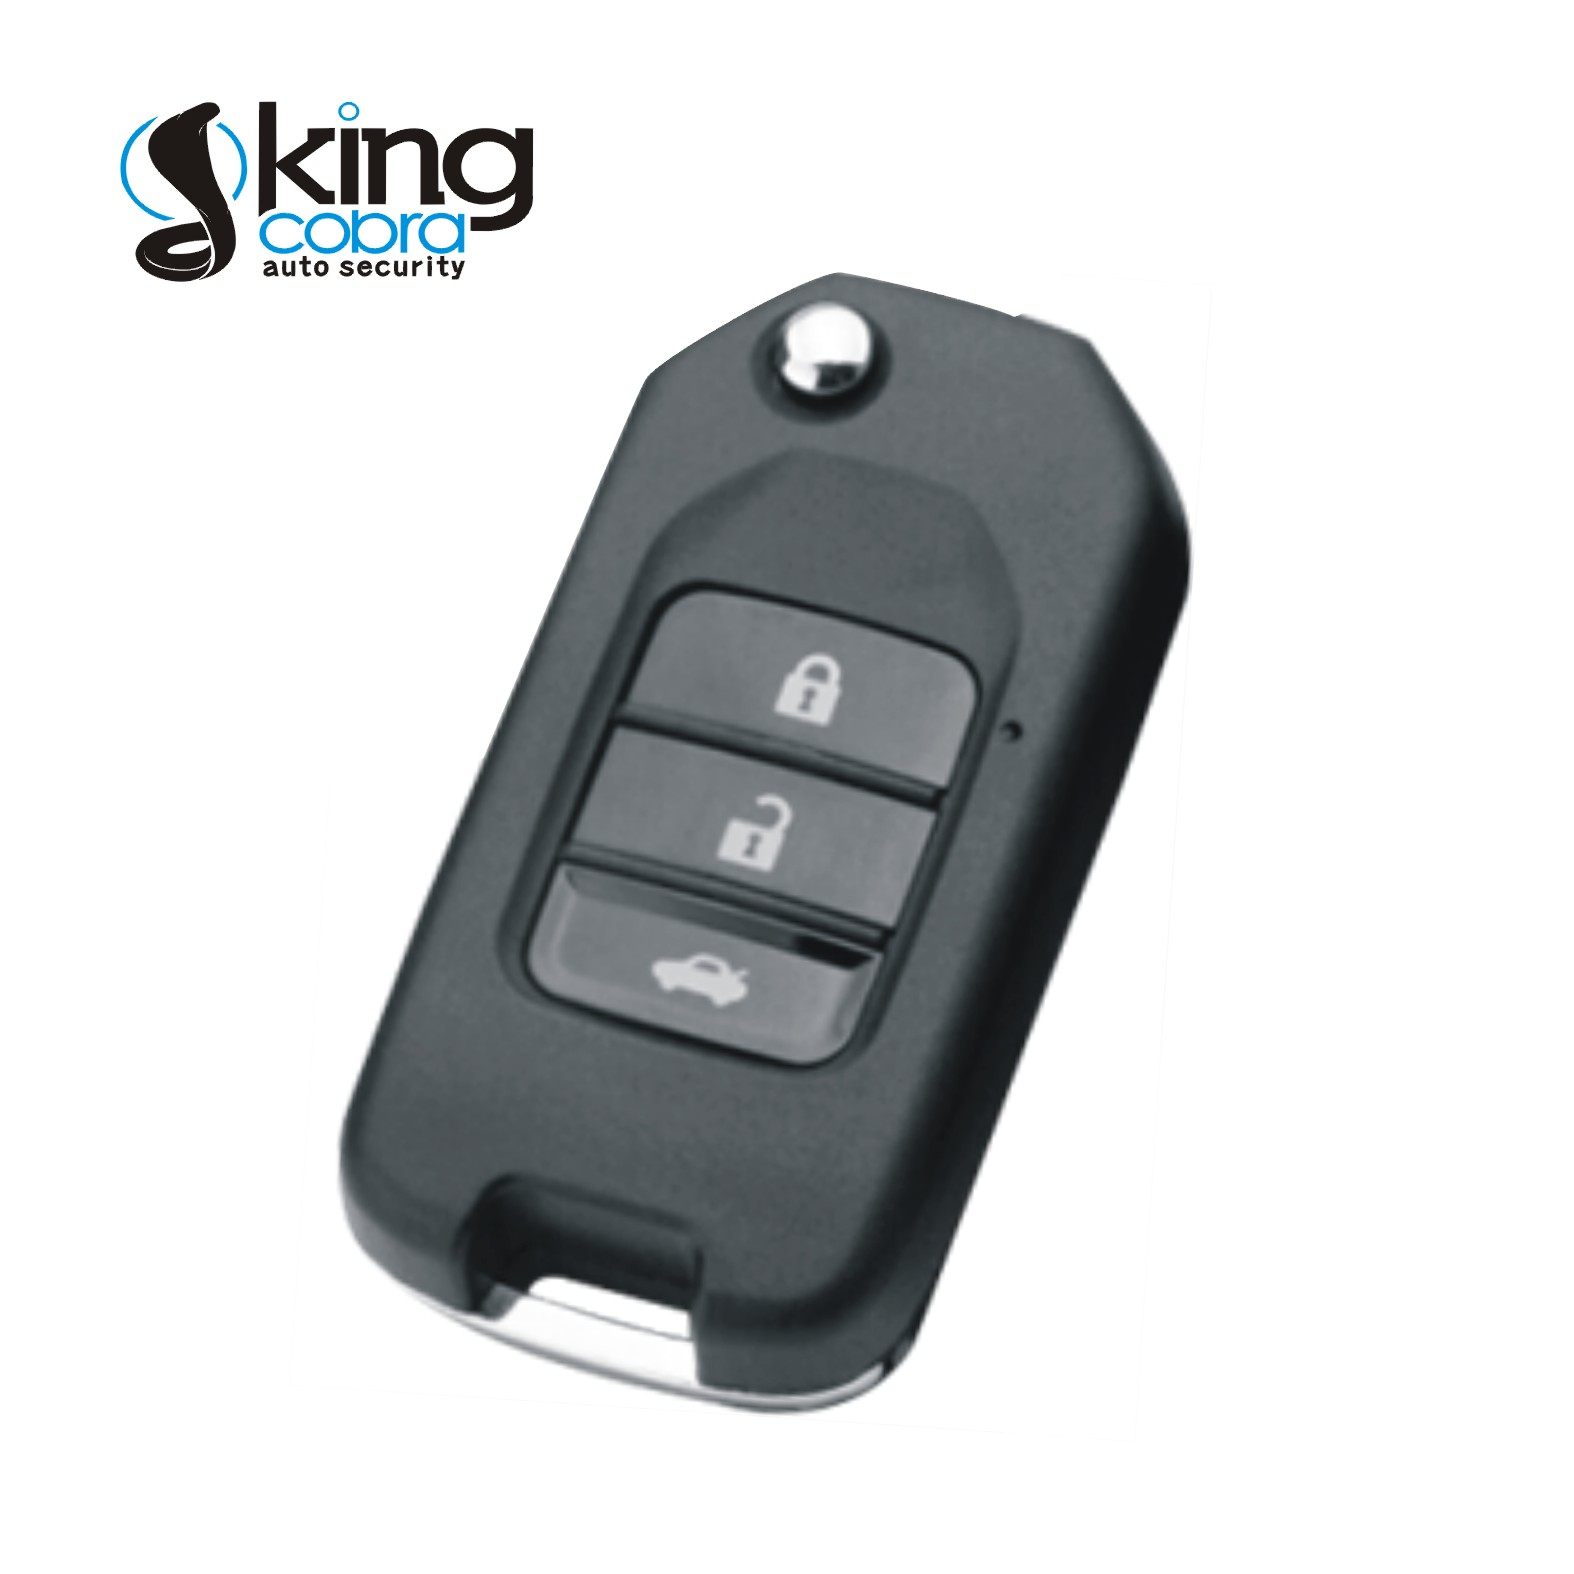 donx92t want to buy a car? join the club  -  smart car immobiliser